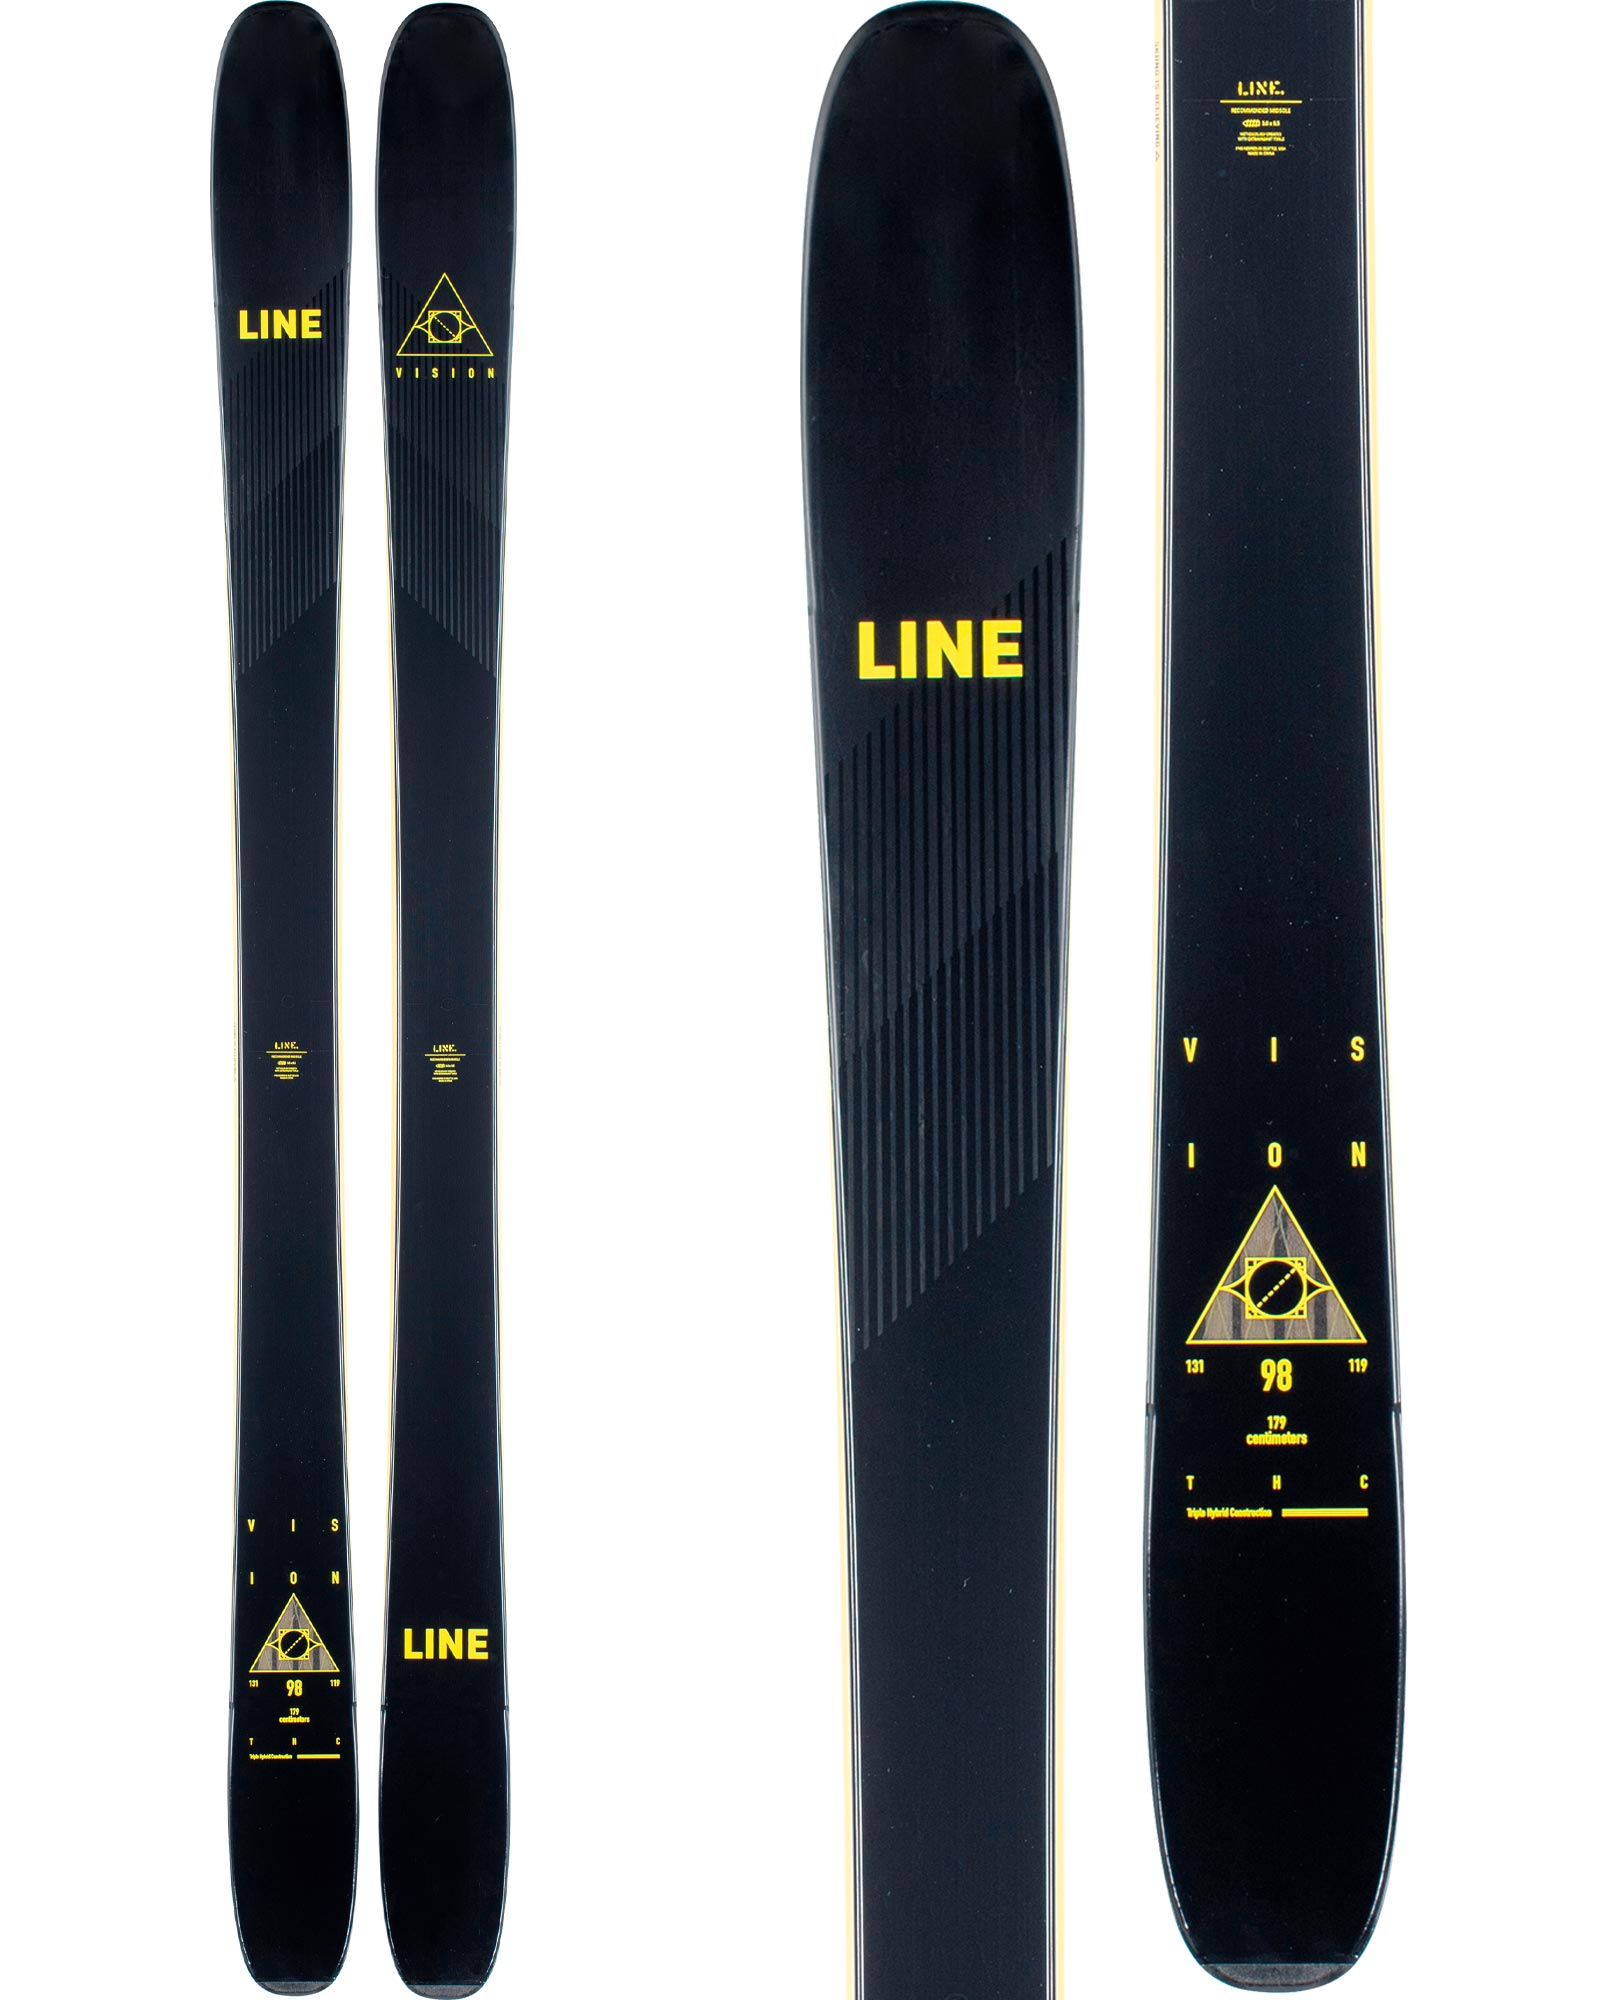 Line Men's Vision 98 Freeride Skis 2020 / 2021 0